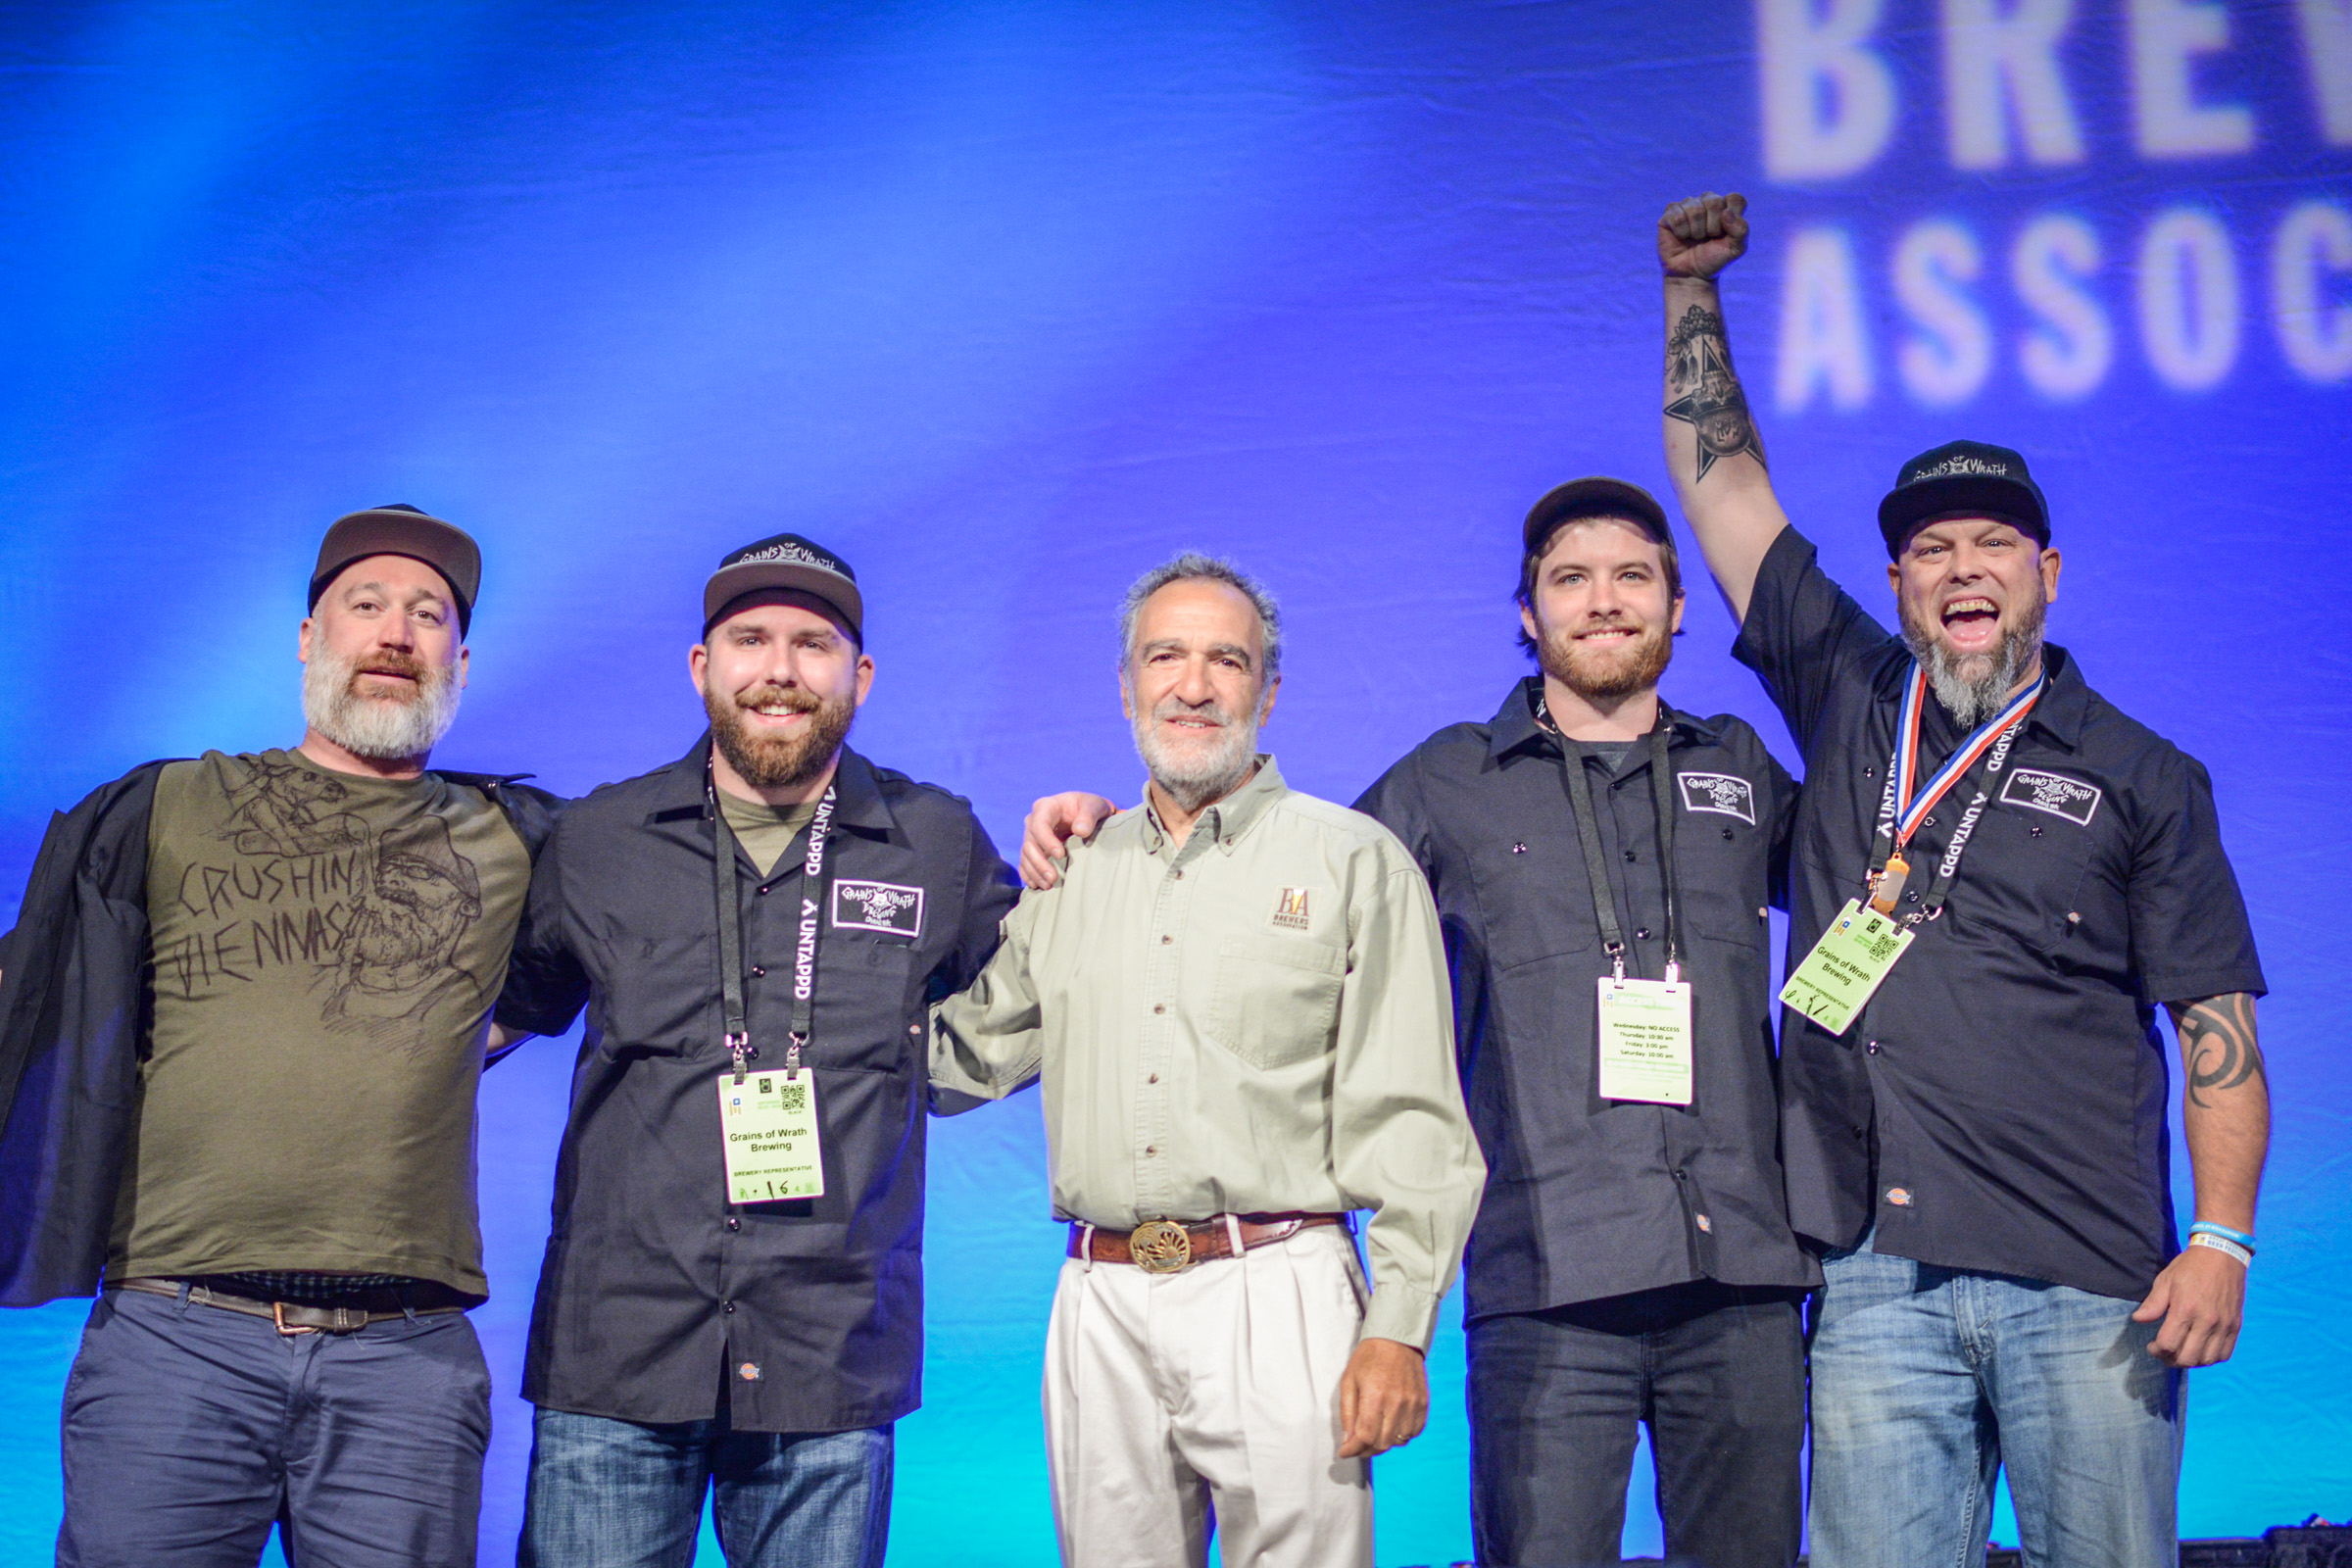 Grains of Wrath of Camas, Washington on stage at the Great American Beer Festival Awards